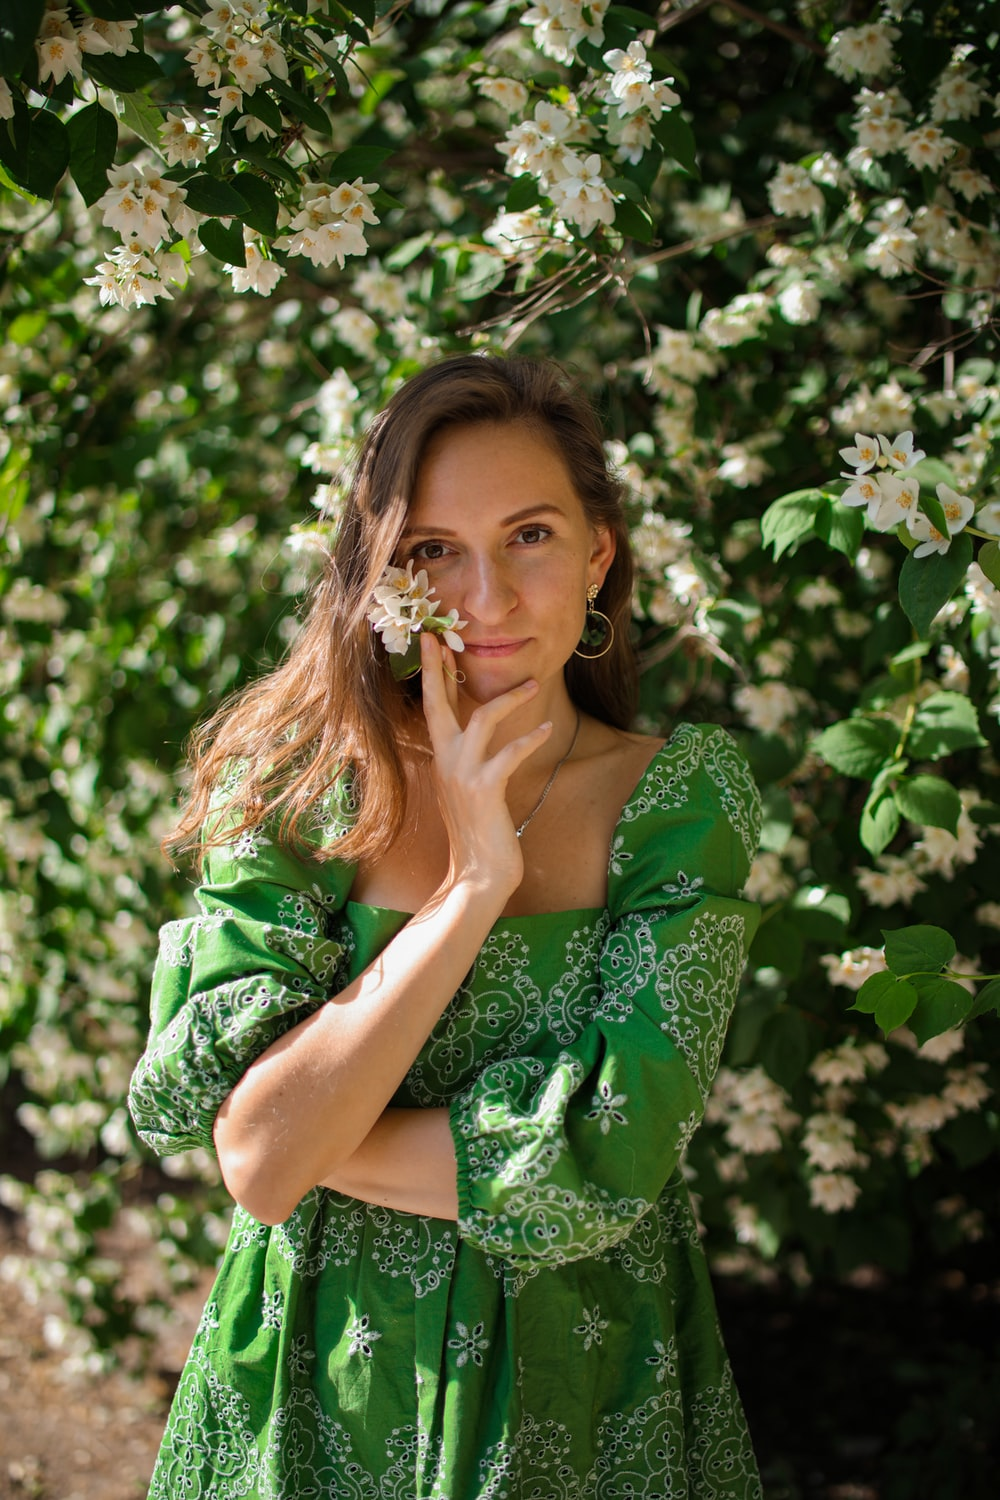 woman in green and white floral dress sitting on green grass during daytime